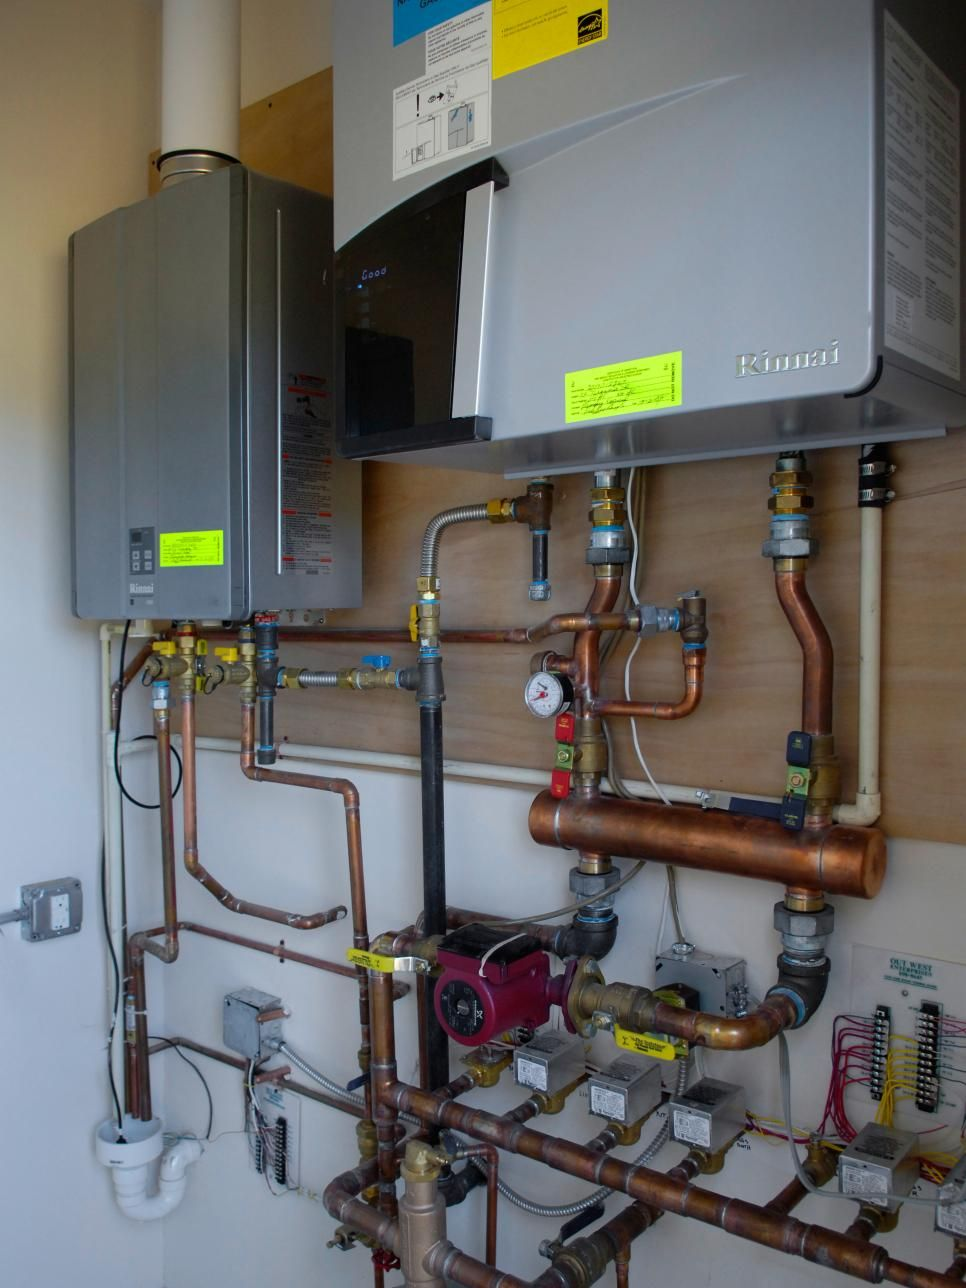 A State Of The Art Rinnai Tankless Water Heater And Boiler That Service Laundry Room Are Housed In An Adjacent Utility